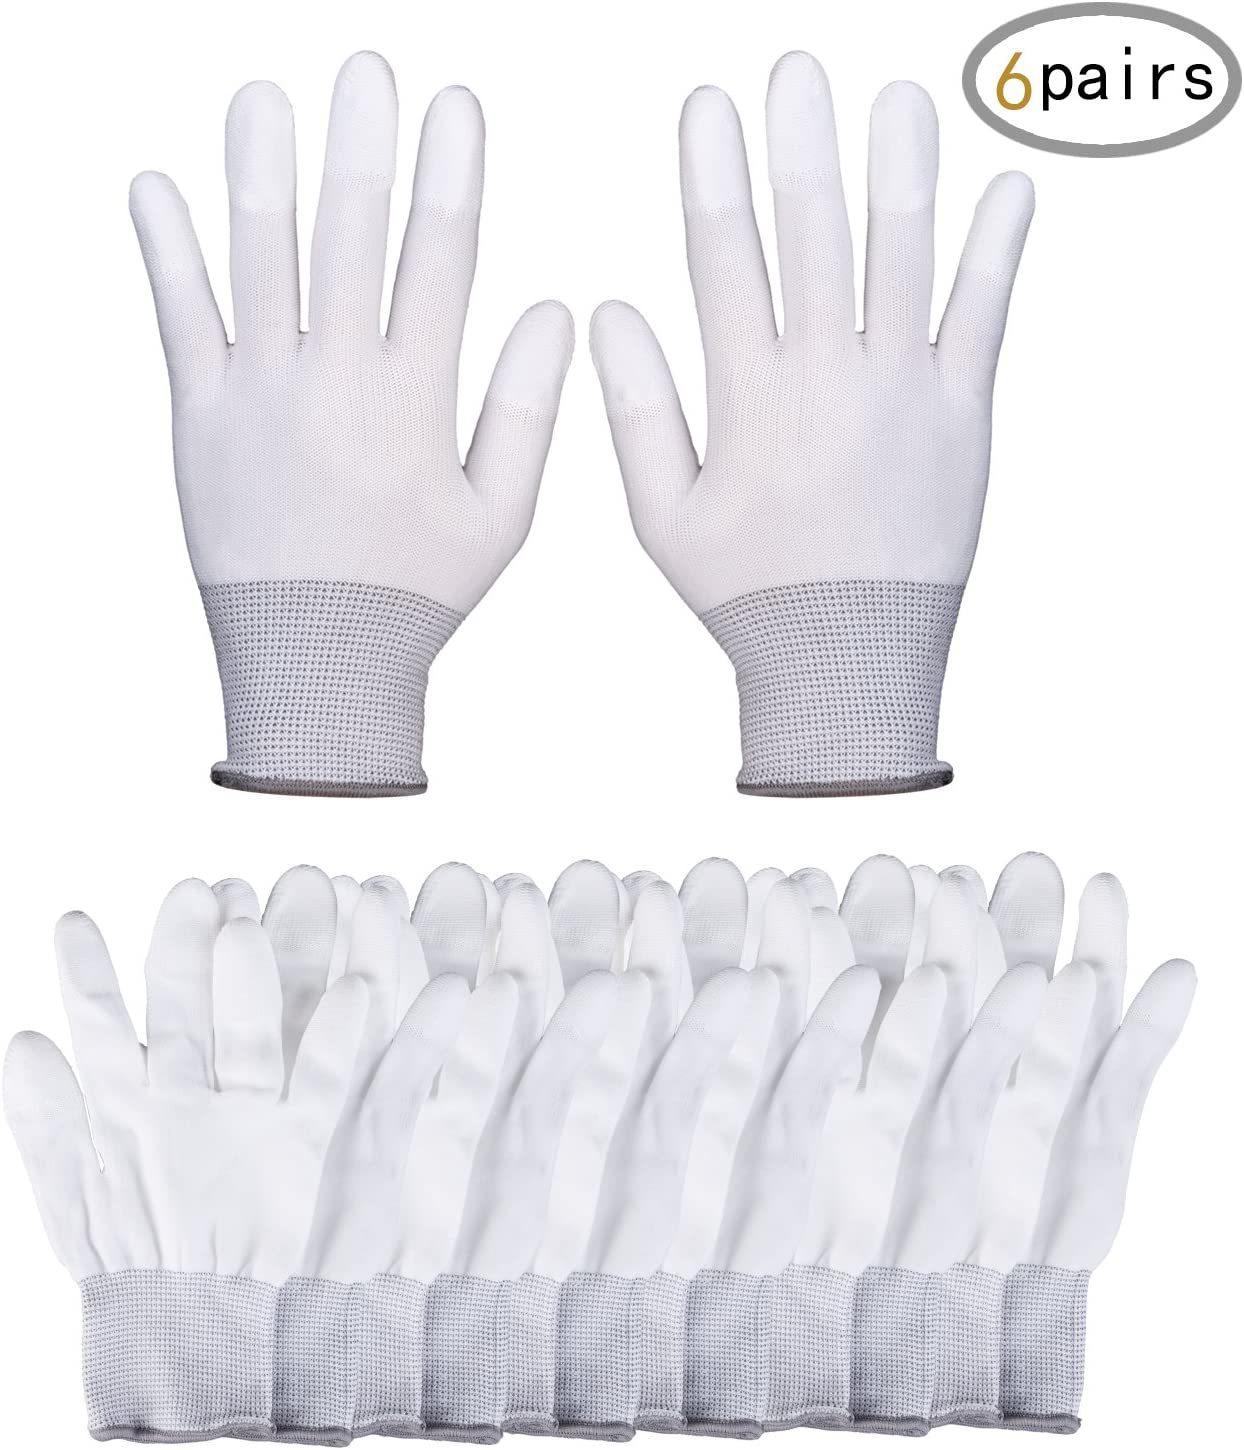 TWY 12 Pieces(6 Pairs) White Nylon Anti Static and Anti-Slip Gloves,Sewing Work Gloves Size Small to Medium